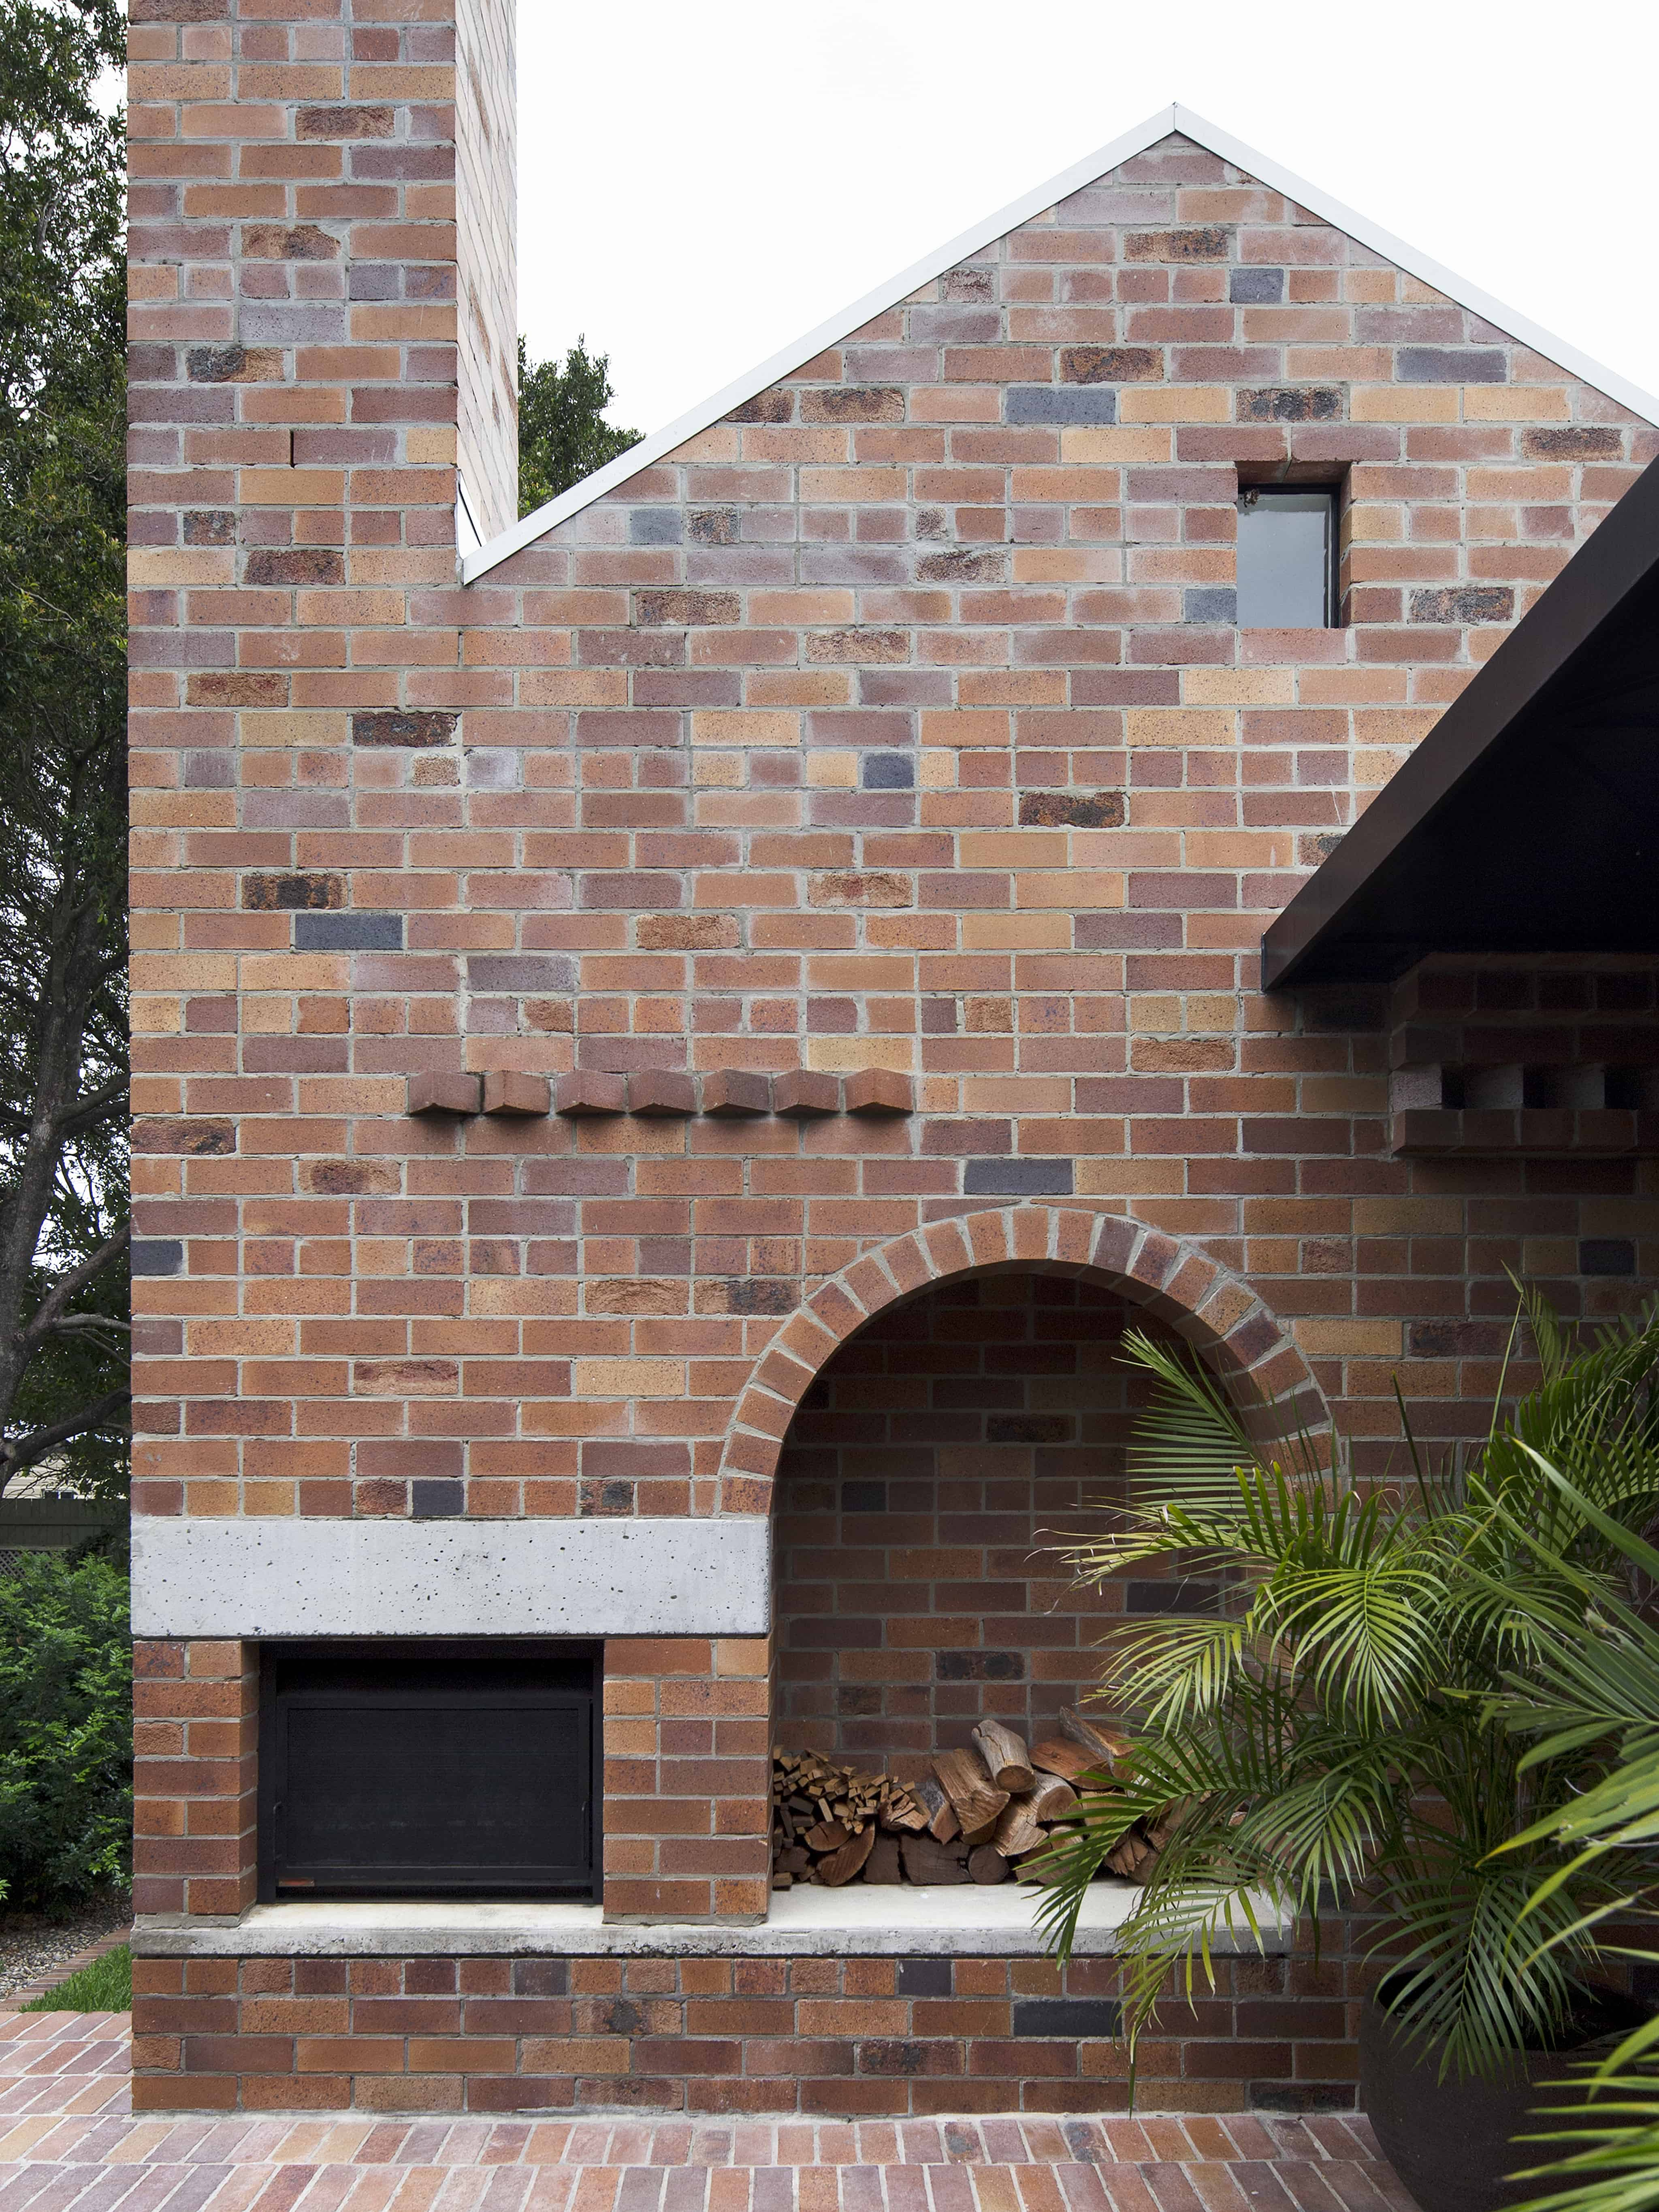 Locally Sourced Natural Materials Were Used In The Design Of The Home.